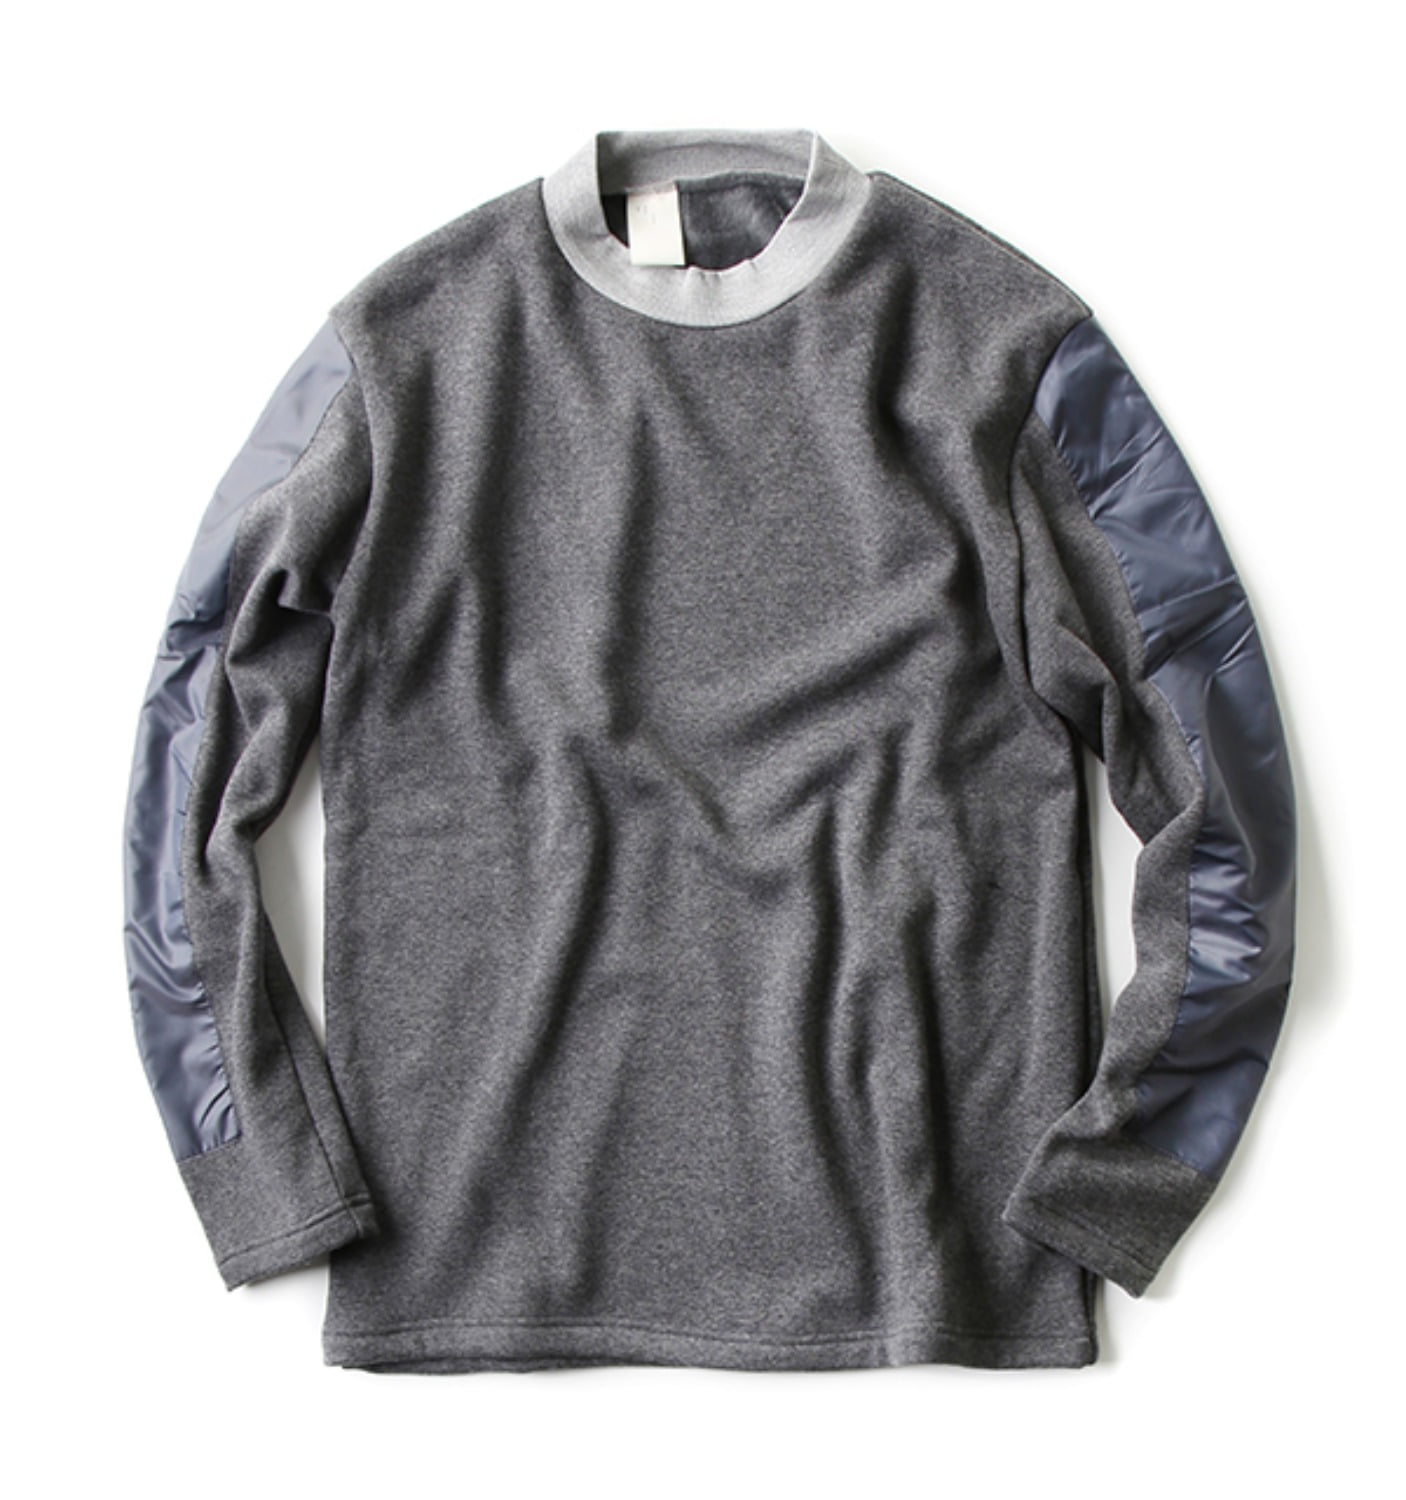 SWEATSHIRT CHARCOAL(162-CS12030)